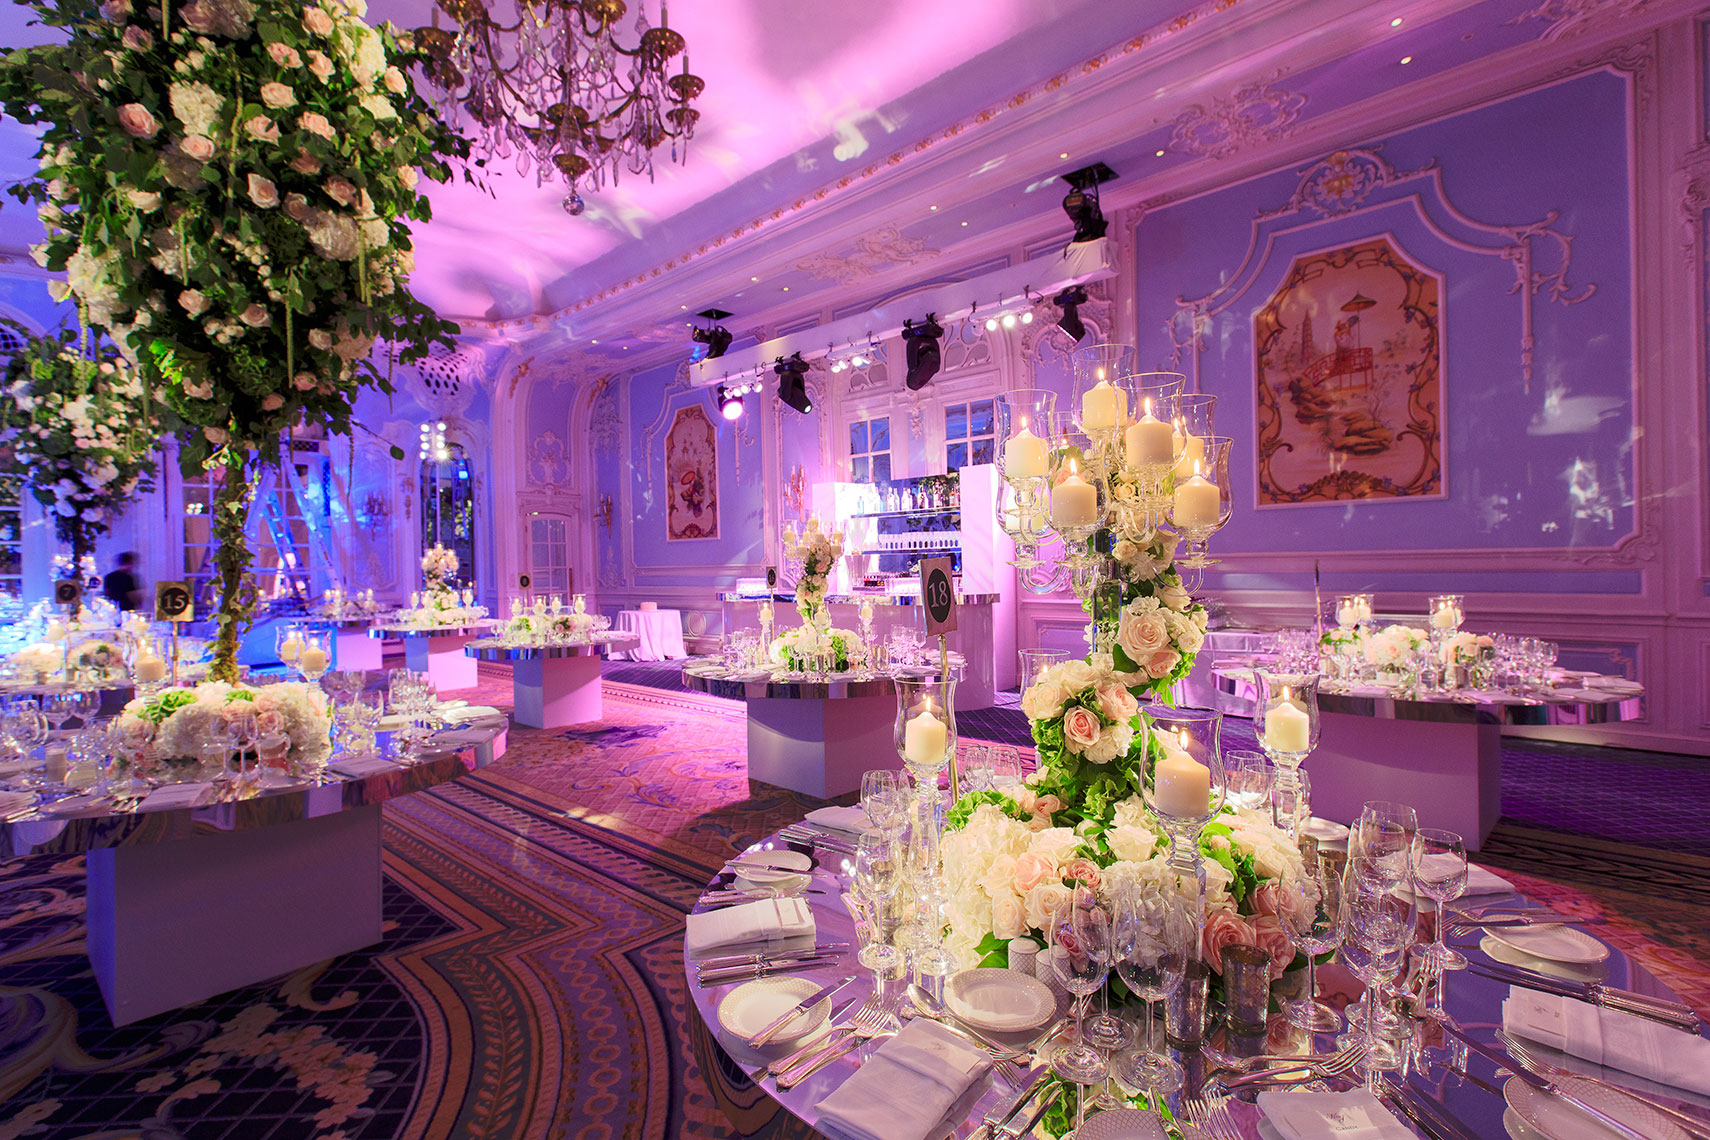 Ornate corporate event space decorated with large floral bouquets on tables with pink lighting